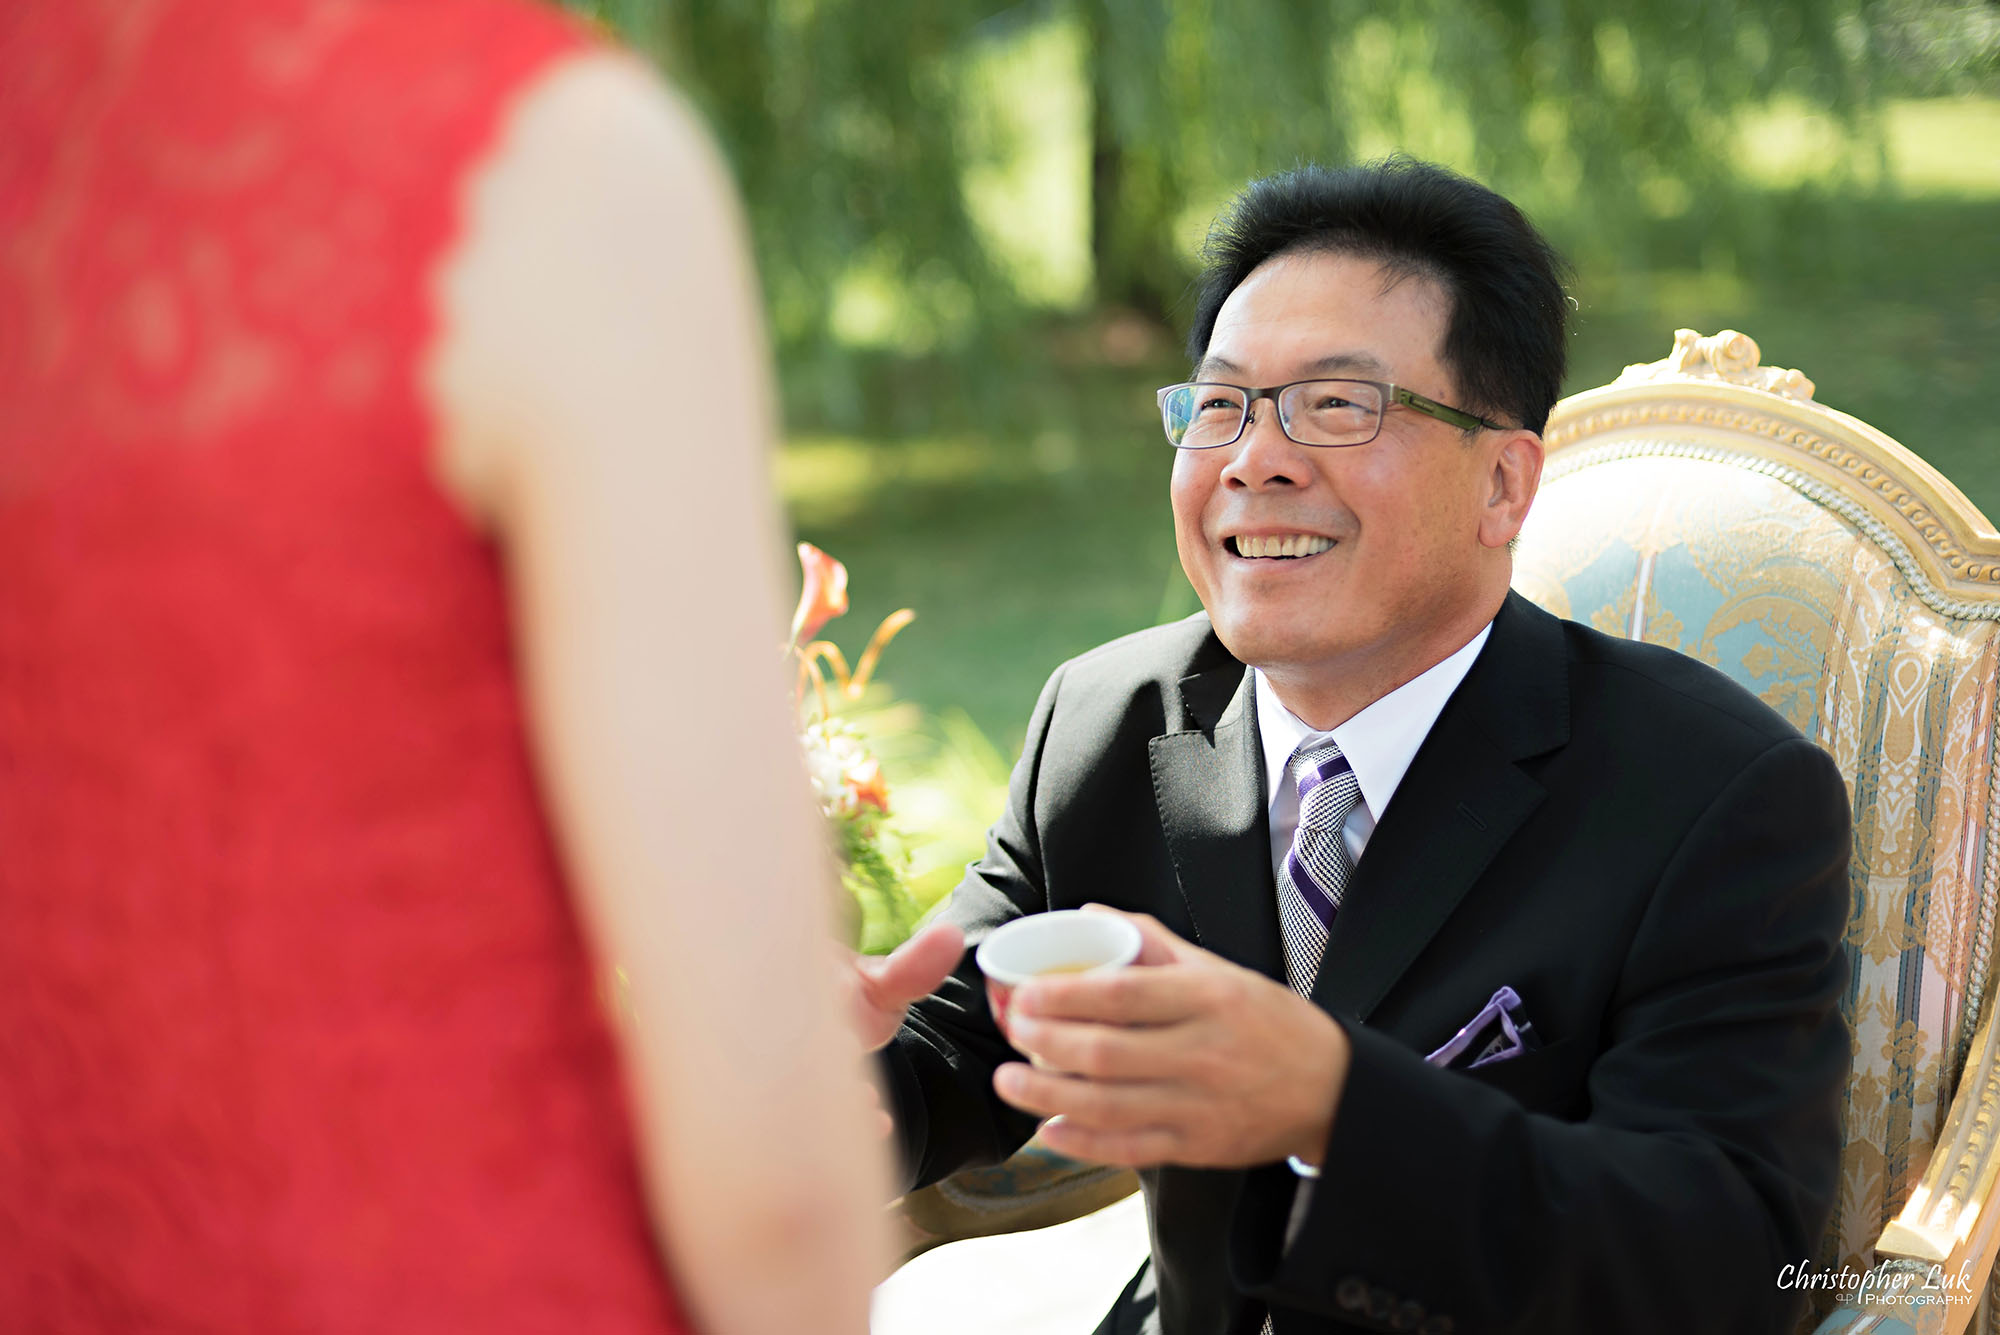 Christopher Luk Photography Toronto Wedding Photographer Chinese Tea Ceremony Bride Groom Father Candid Natural Photojournalistic Happy Smile